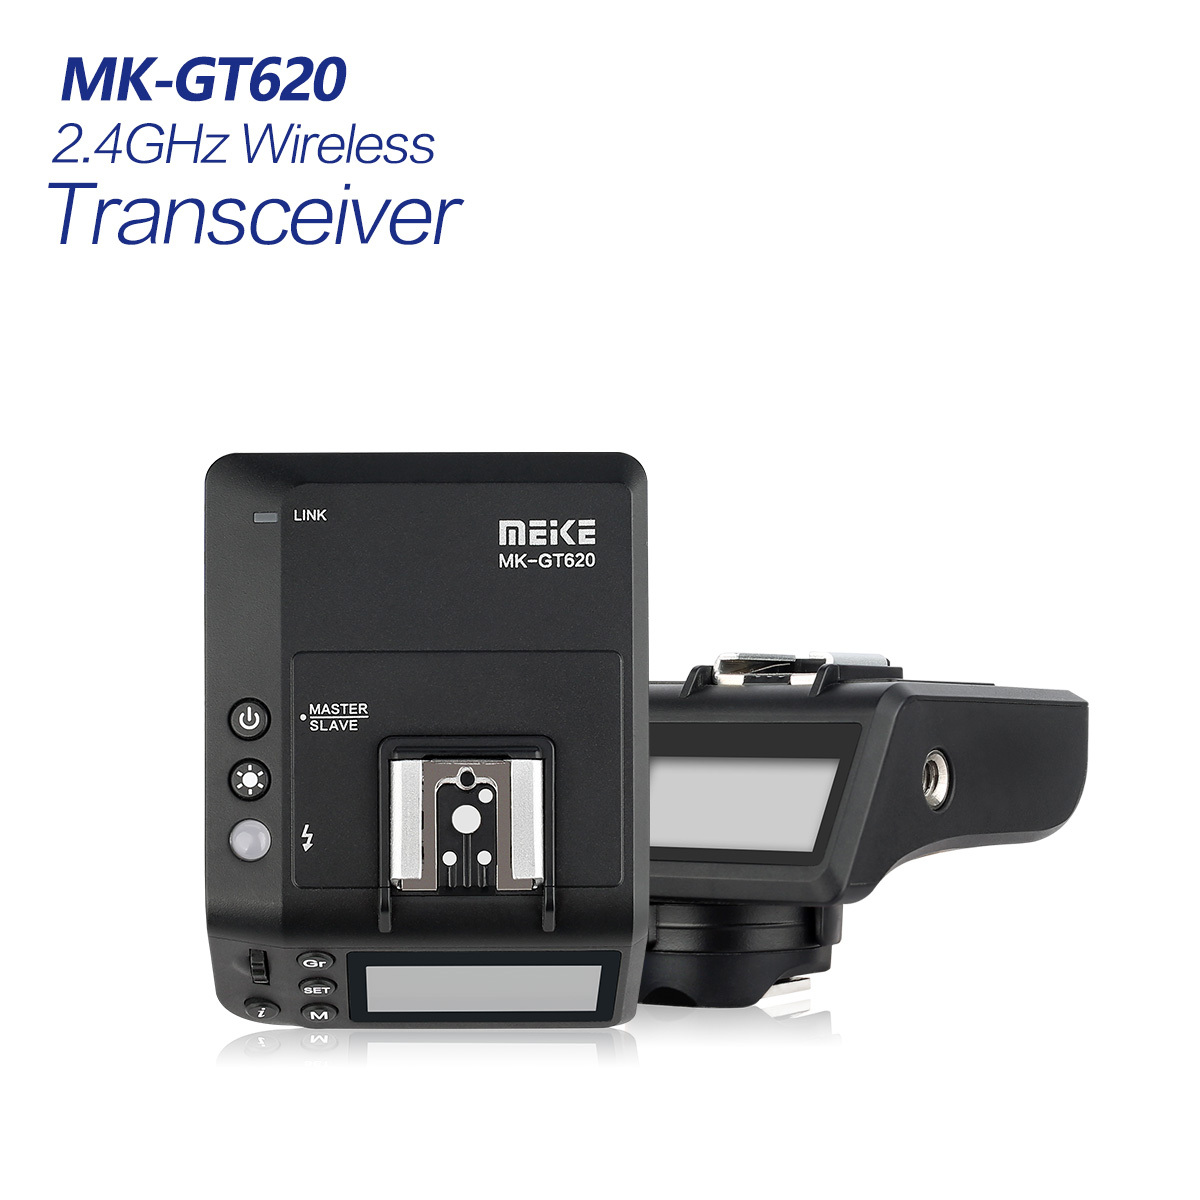 MK-GT620N Wireless Transceiver